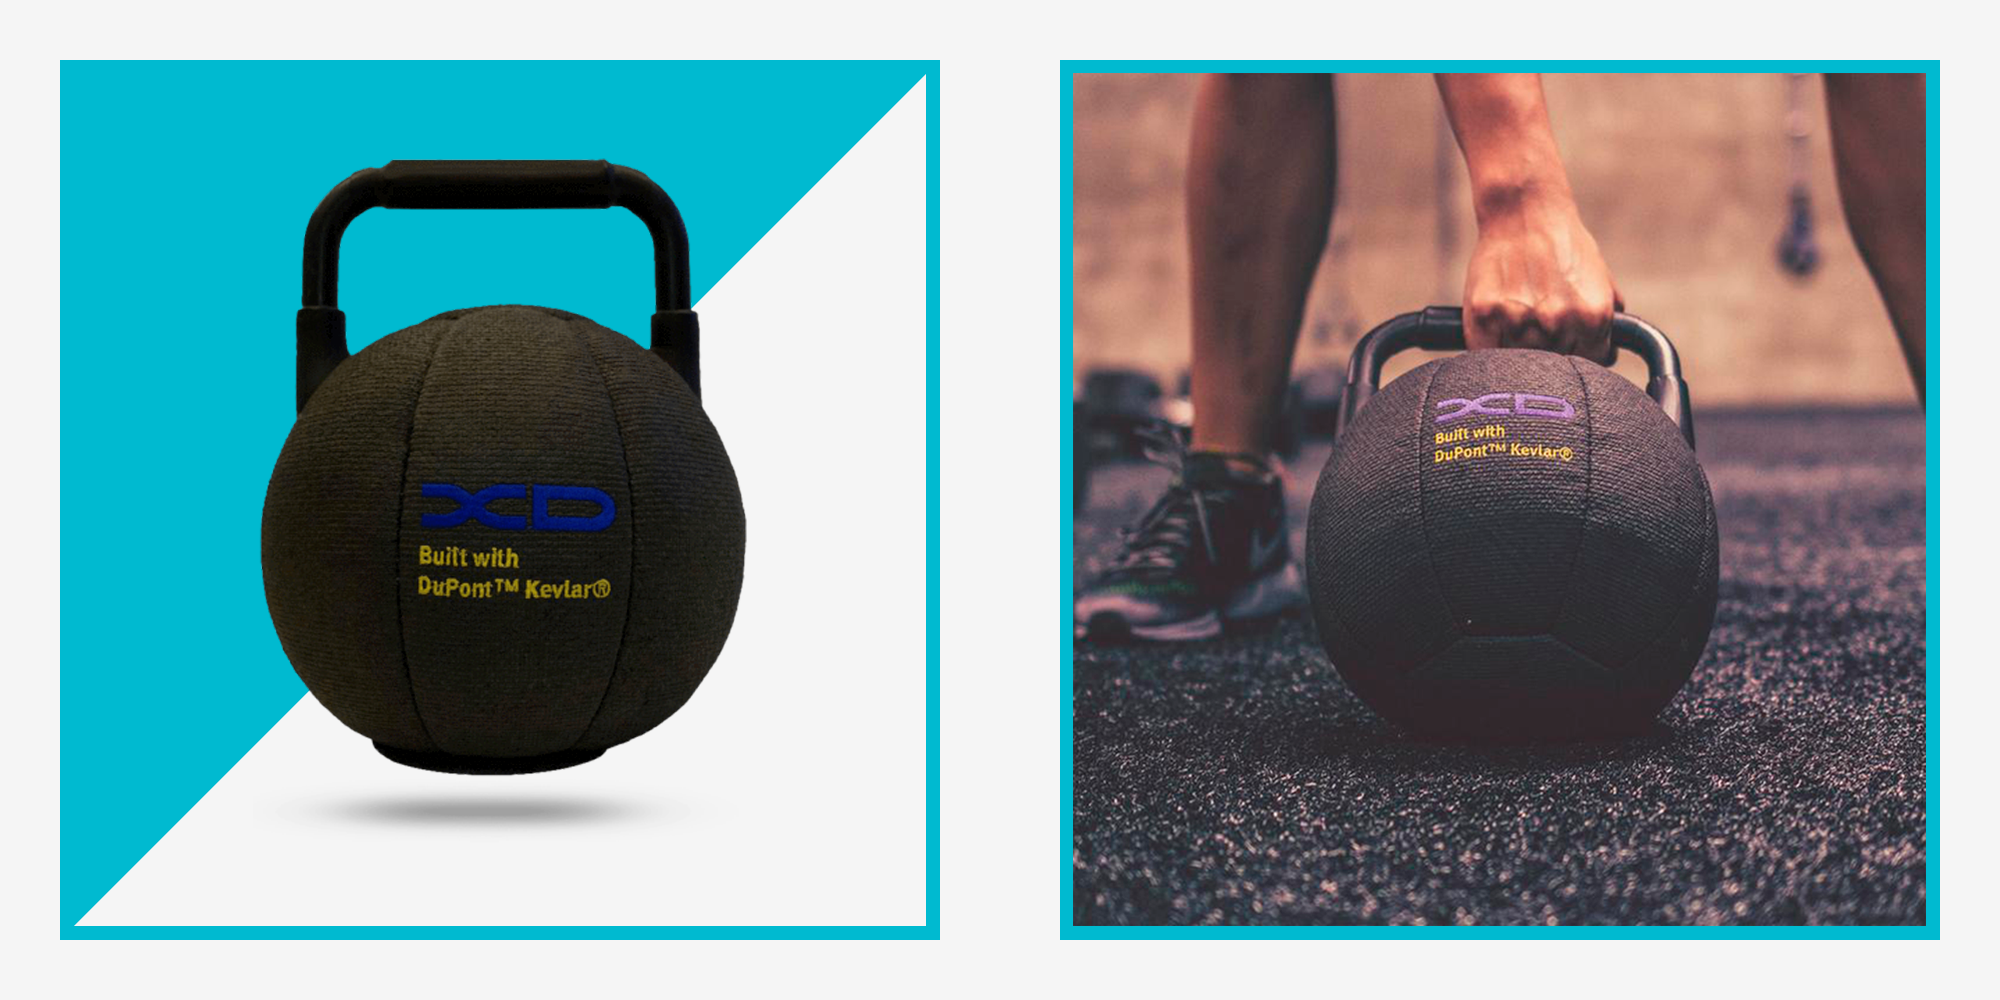 The XD Fit Kevlar Kettlebell Is Just What Your Home Gym Needs.